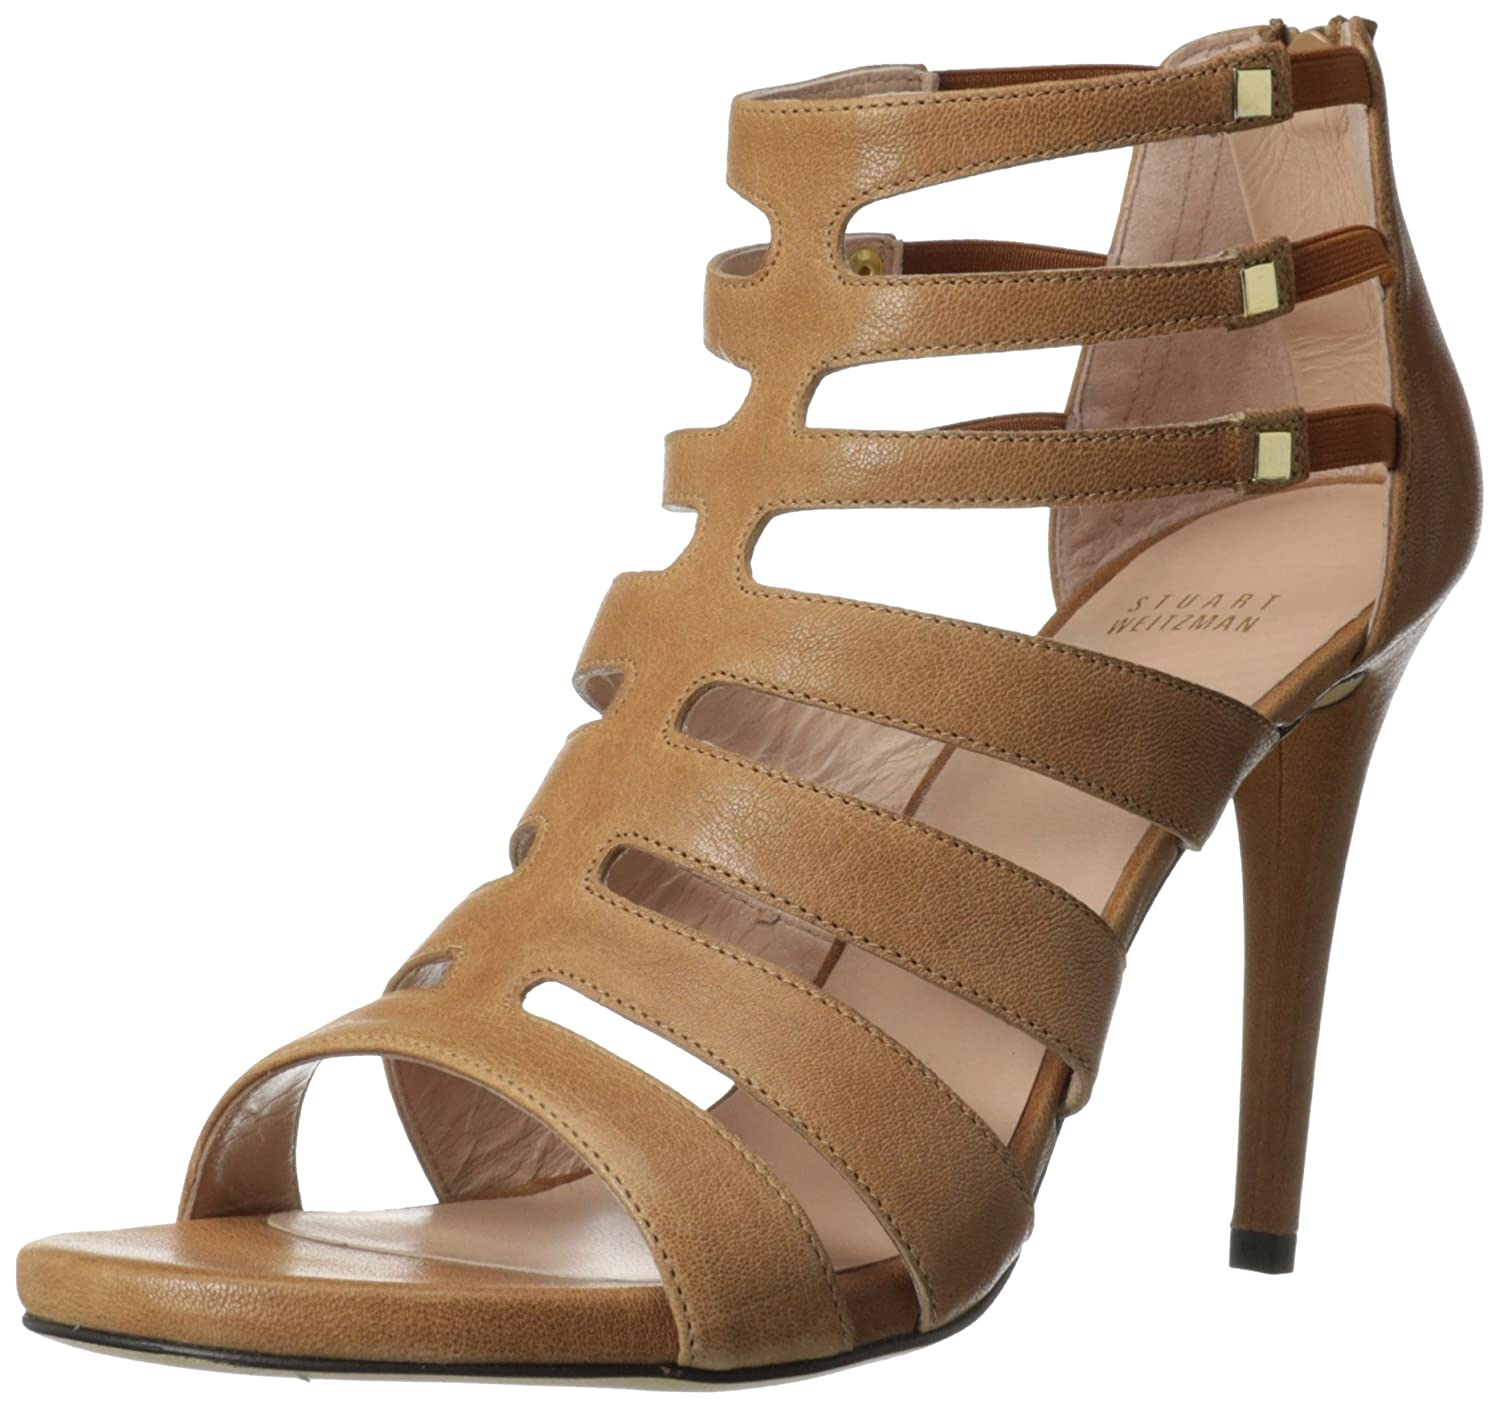 Stuart Weitzman Womens Outing Dress Sandal